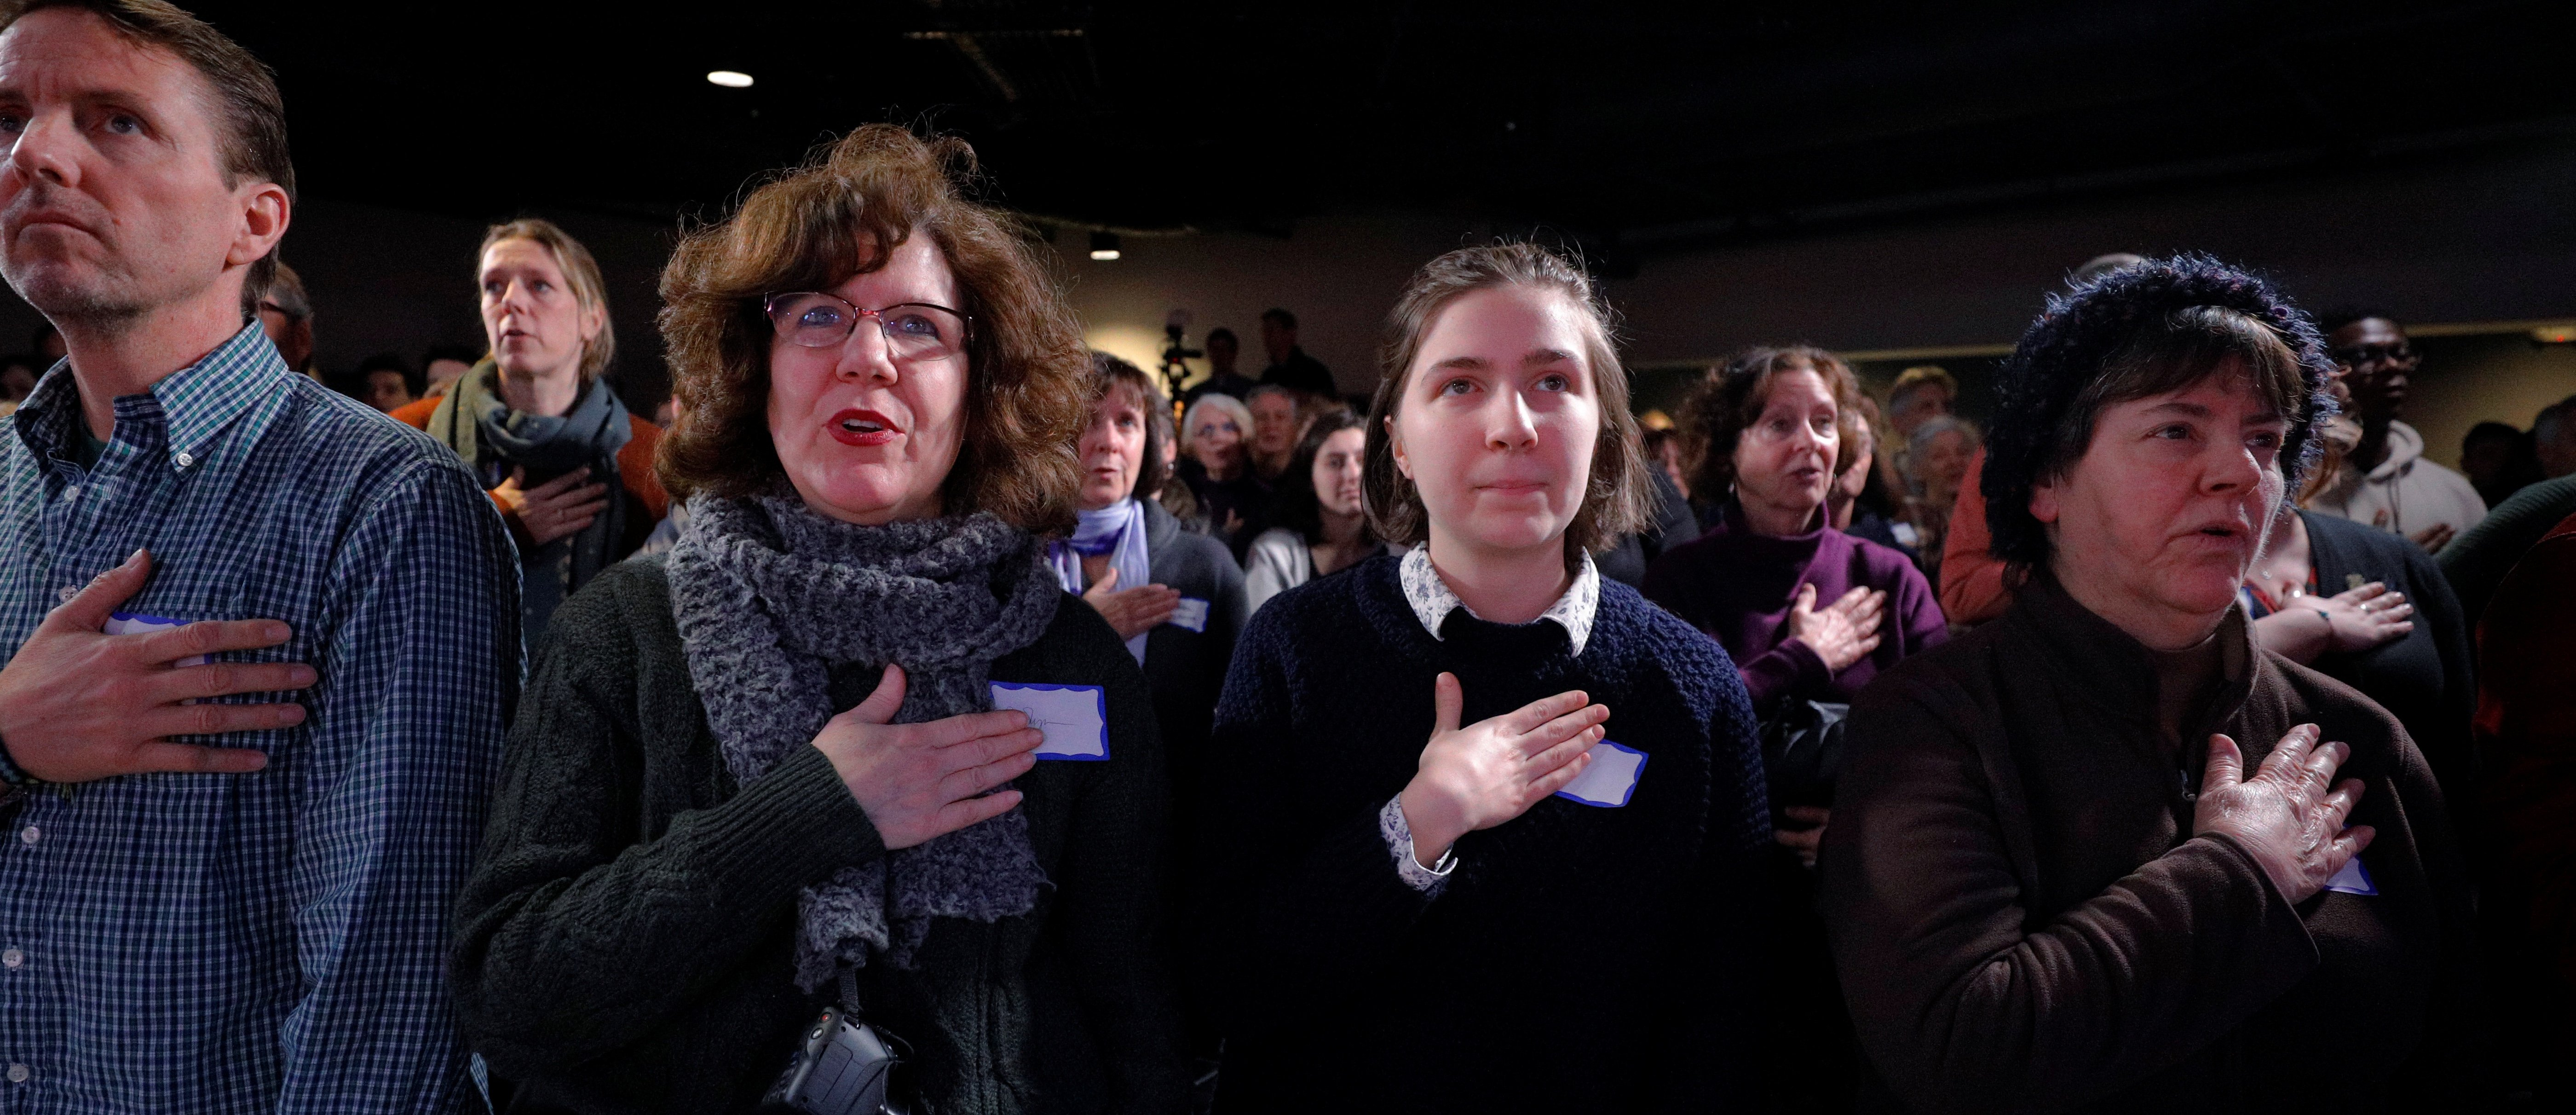 Audience members recite the U.S. pledge of allegiance before a campaign stop with Democratic 2020 U.S. presidential candidate and U.S. Senator Cory Booker (D-NJ) in Portsmouth, New Hampshire, U.S., February 16, 2019. REUTERS/Brian Snyder